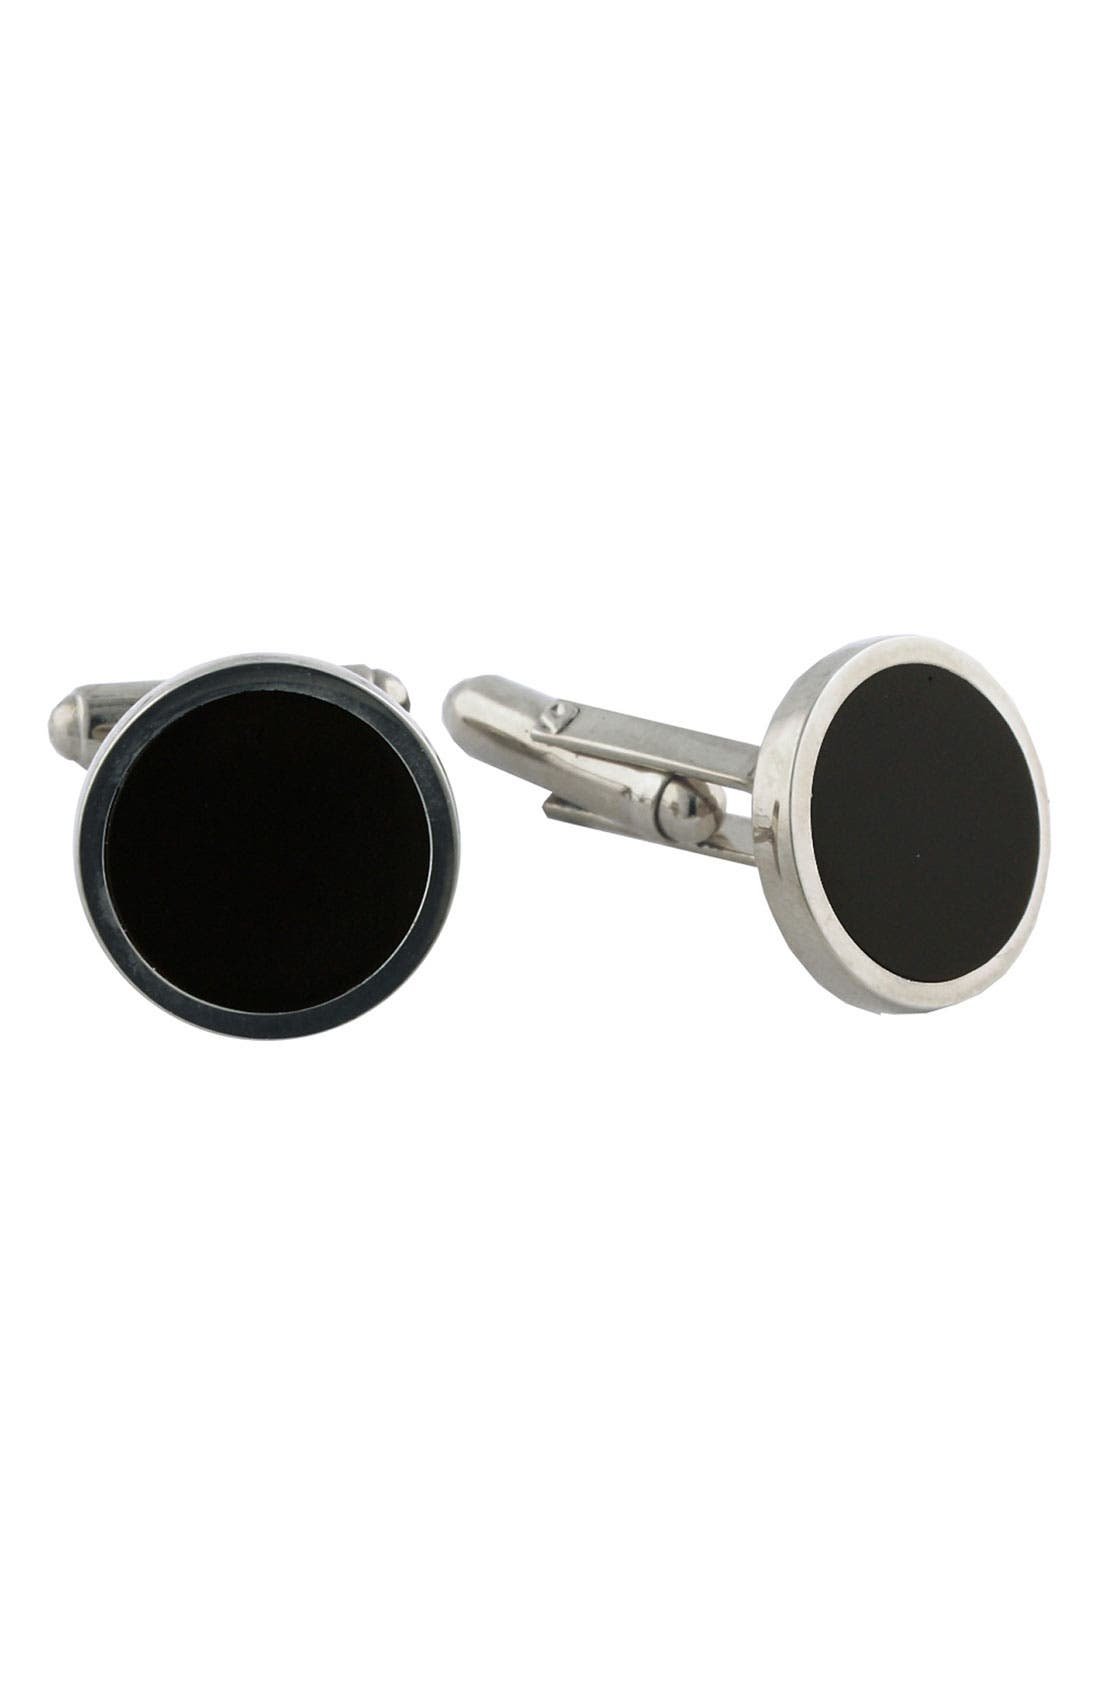 Alternate Image 1 Selected - David Donahue Sterling Silver & Onyx Cuff Links